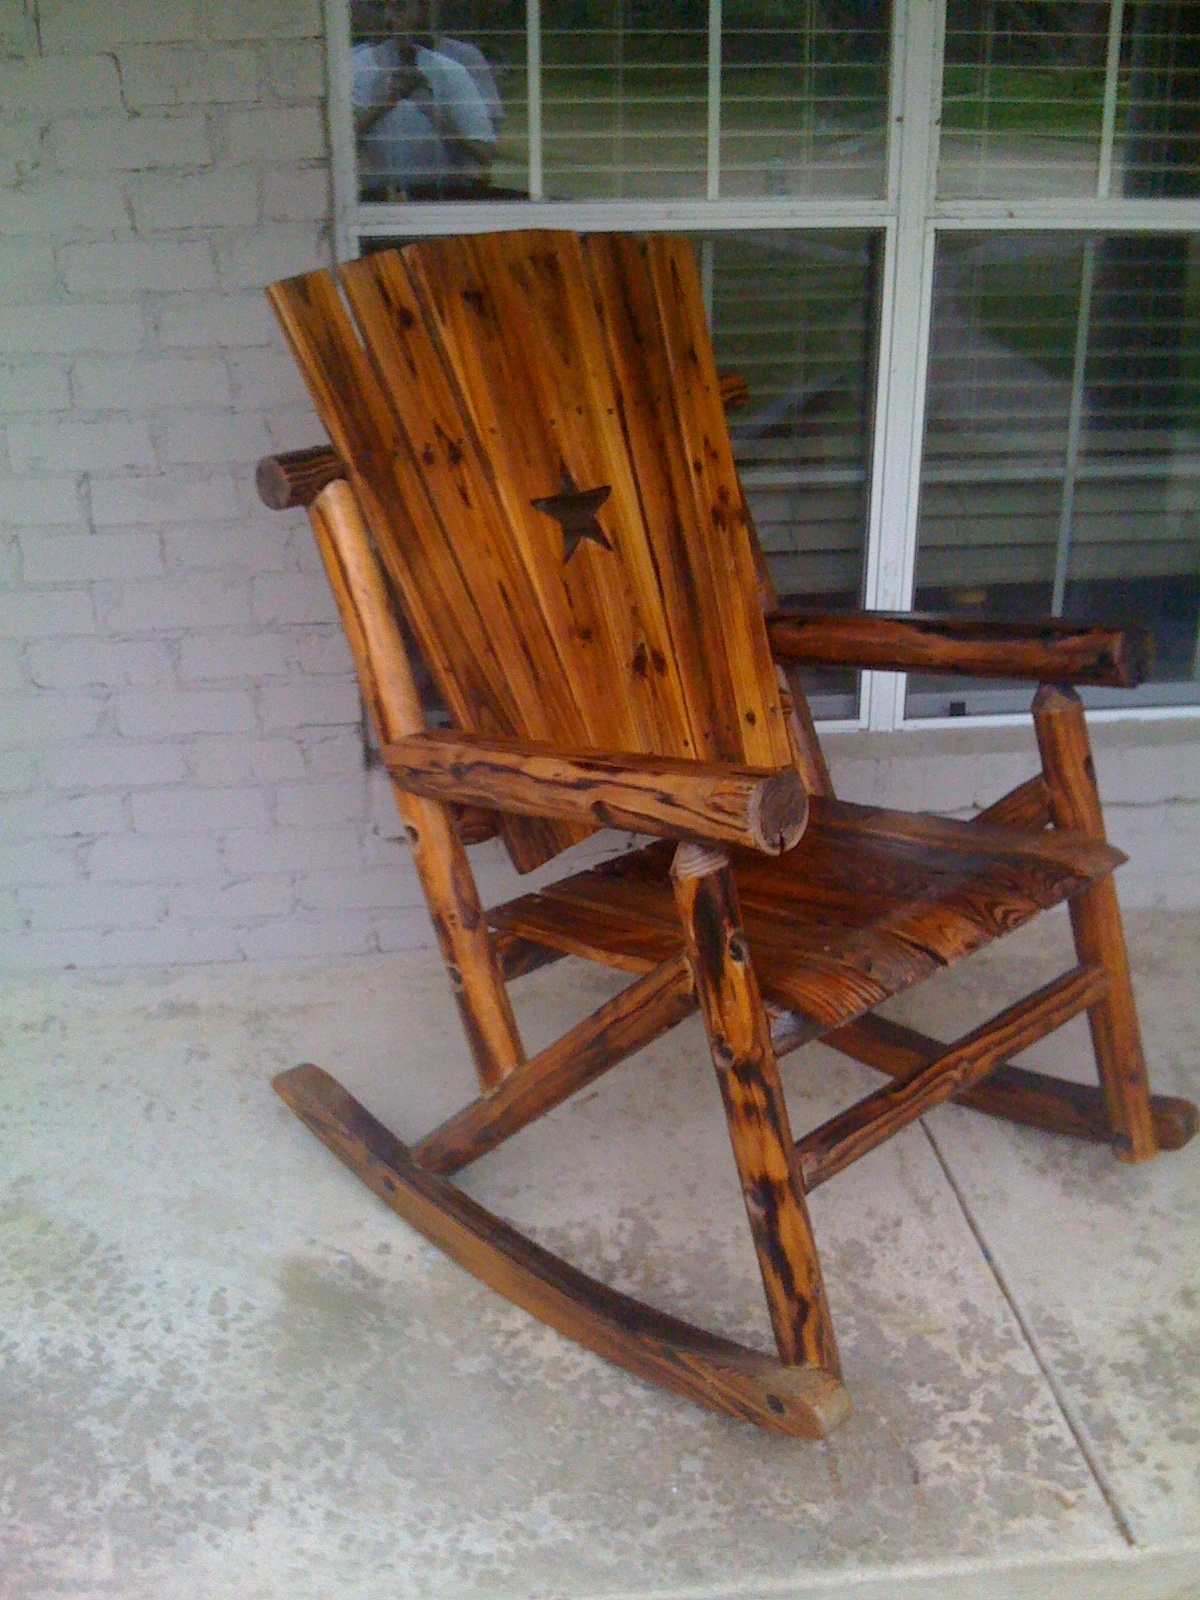 Latest Wooden Patio Rocking Chairs Regarding Outdoor Wooden Rocking Chairs Rustic : Pleasure Outdoor Wooden (View 5 of 15)